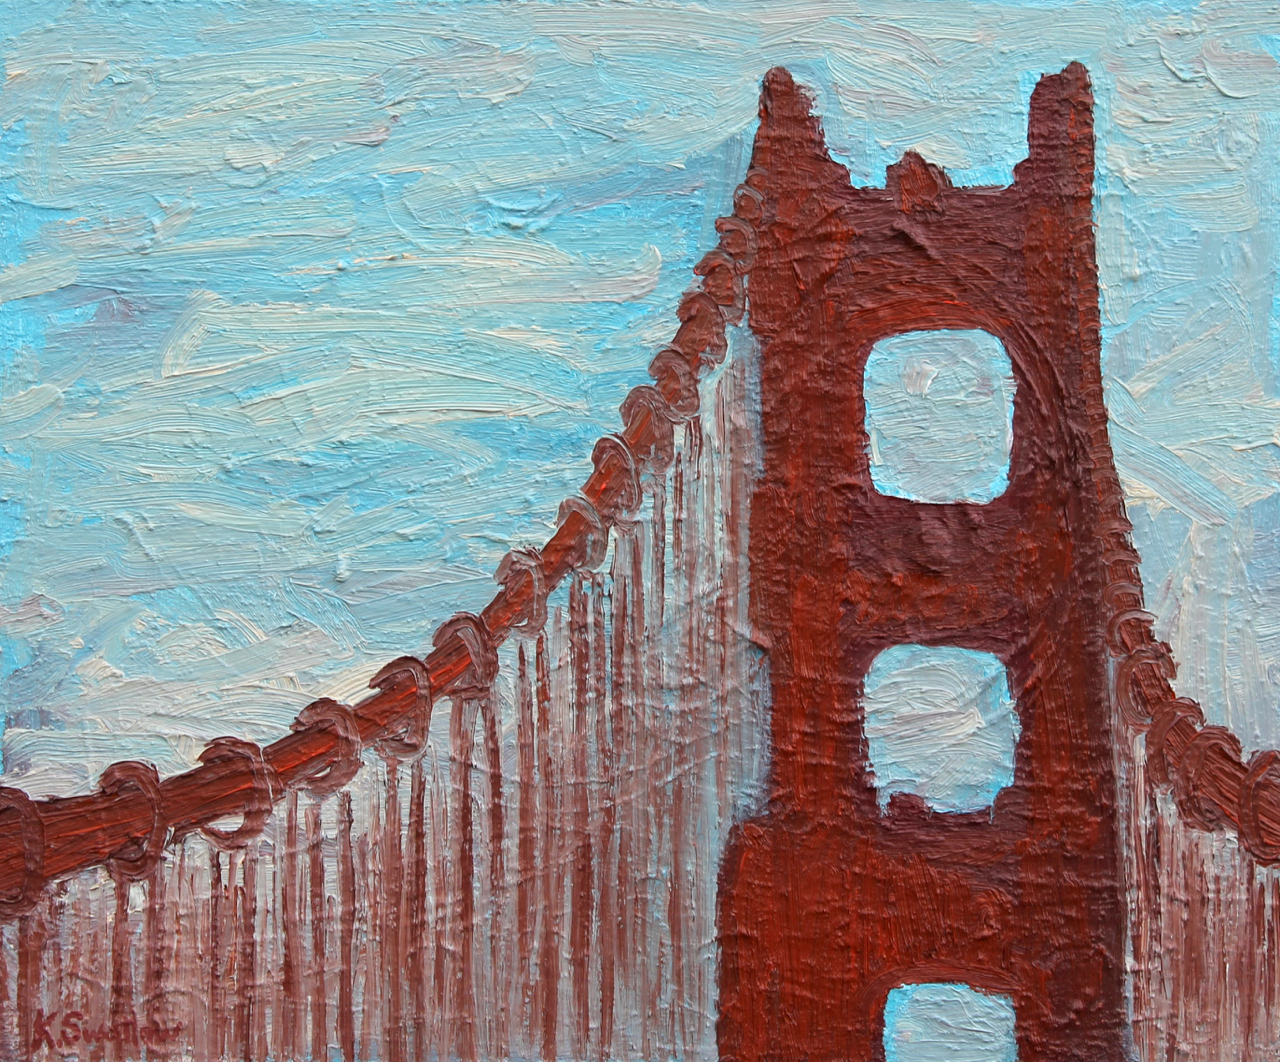 Golden Gate Fog, oil on canvas, 20x24, 2013, AVAILABLE